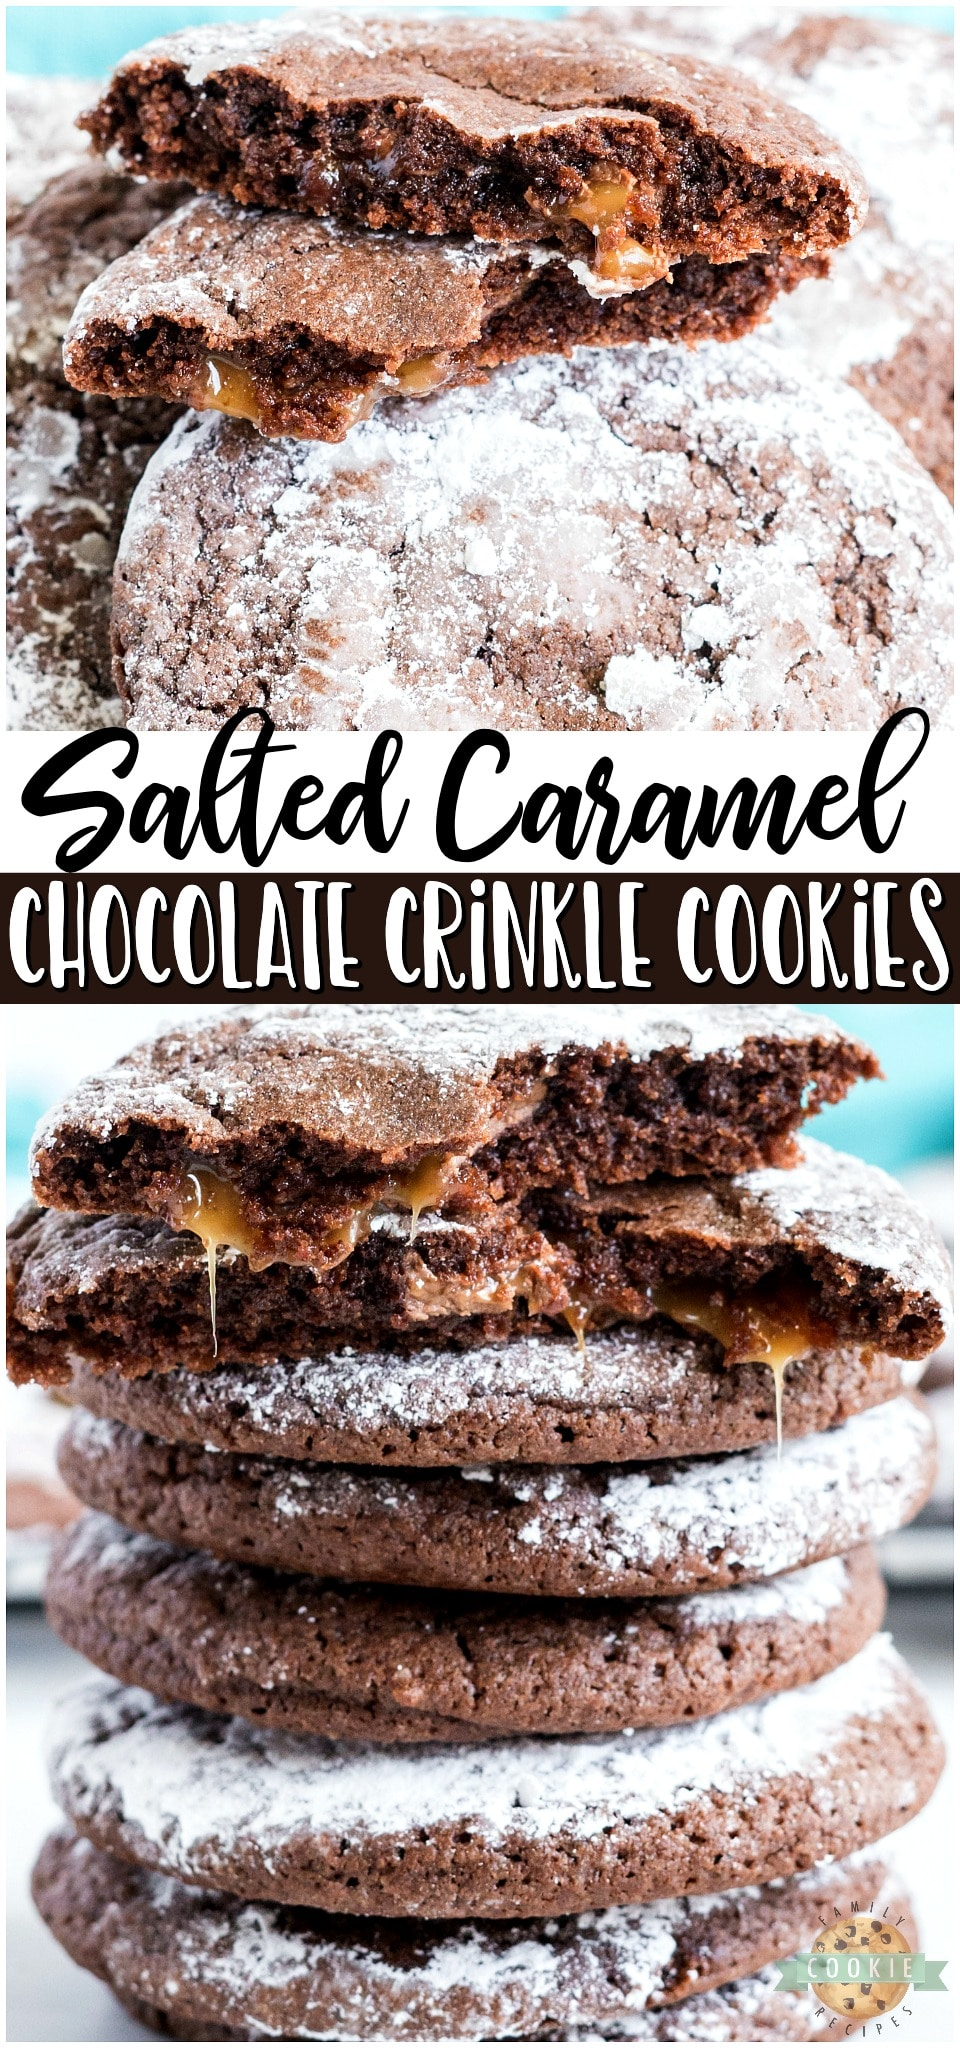 Caramel chocolate crinkle cookies are soft & chewy cookies with a salted caramel filling. Traditional Chocolate Crinkle Cookies with caramel filling that everyone loves! #cookies #chocolate #caramel #crinkle #dessert #baking #easyrecipe from FAMILY COOKIE RECIPES via @familycookierecipes